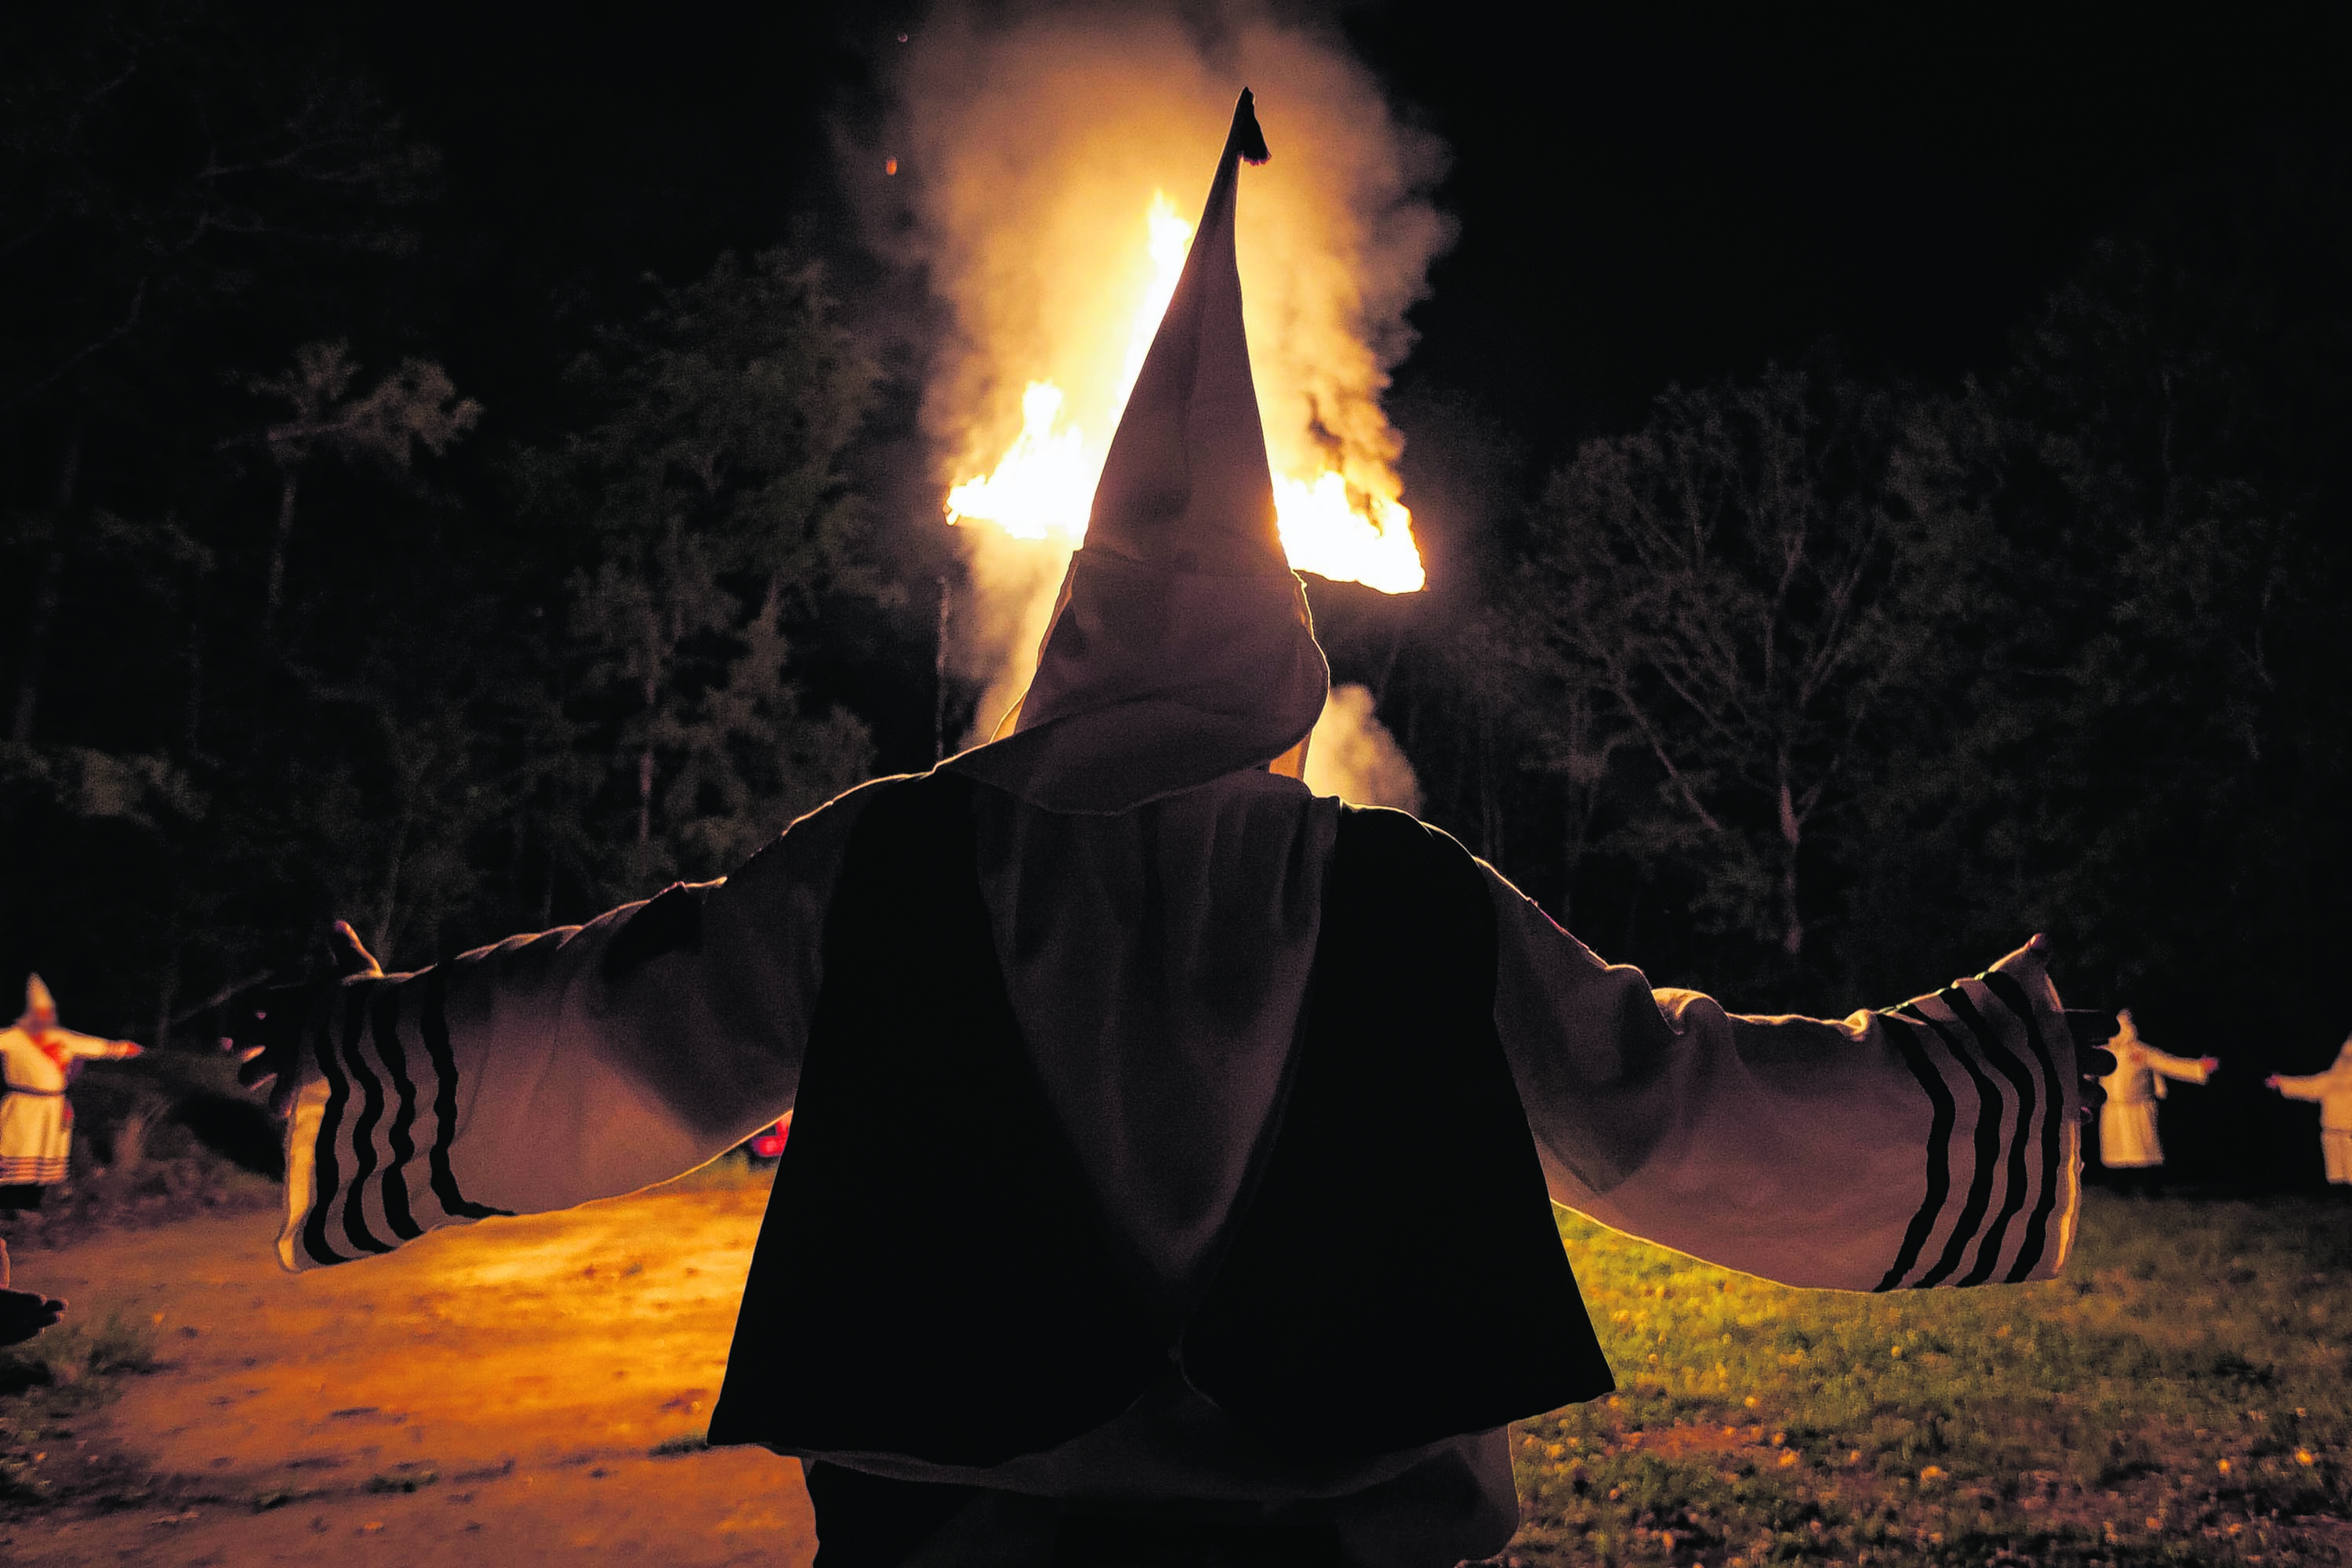 The KKK was recently the subject of a Channel 4 documentary, Inside the Ku Klux Klan